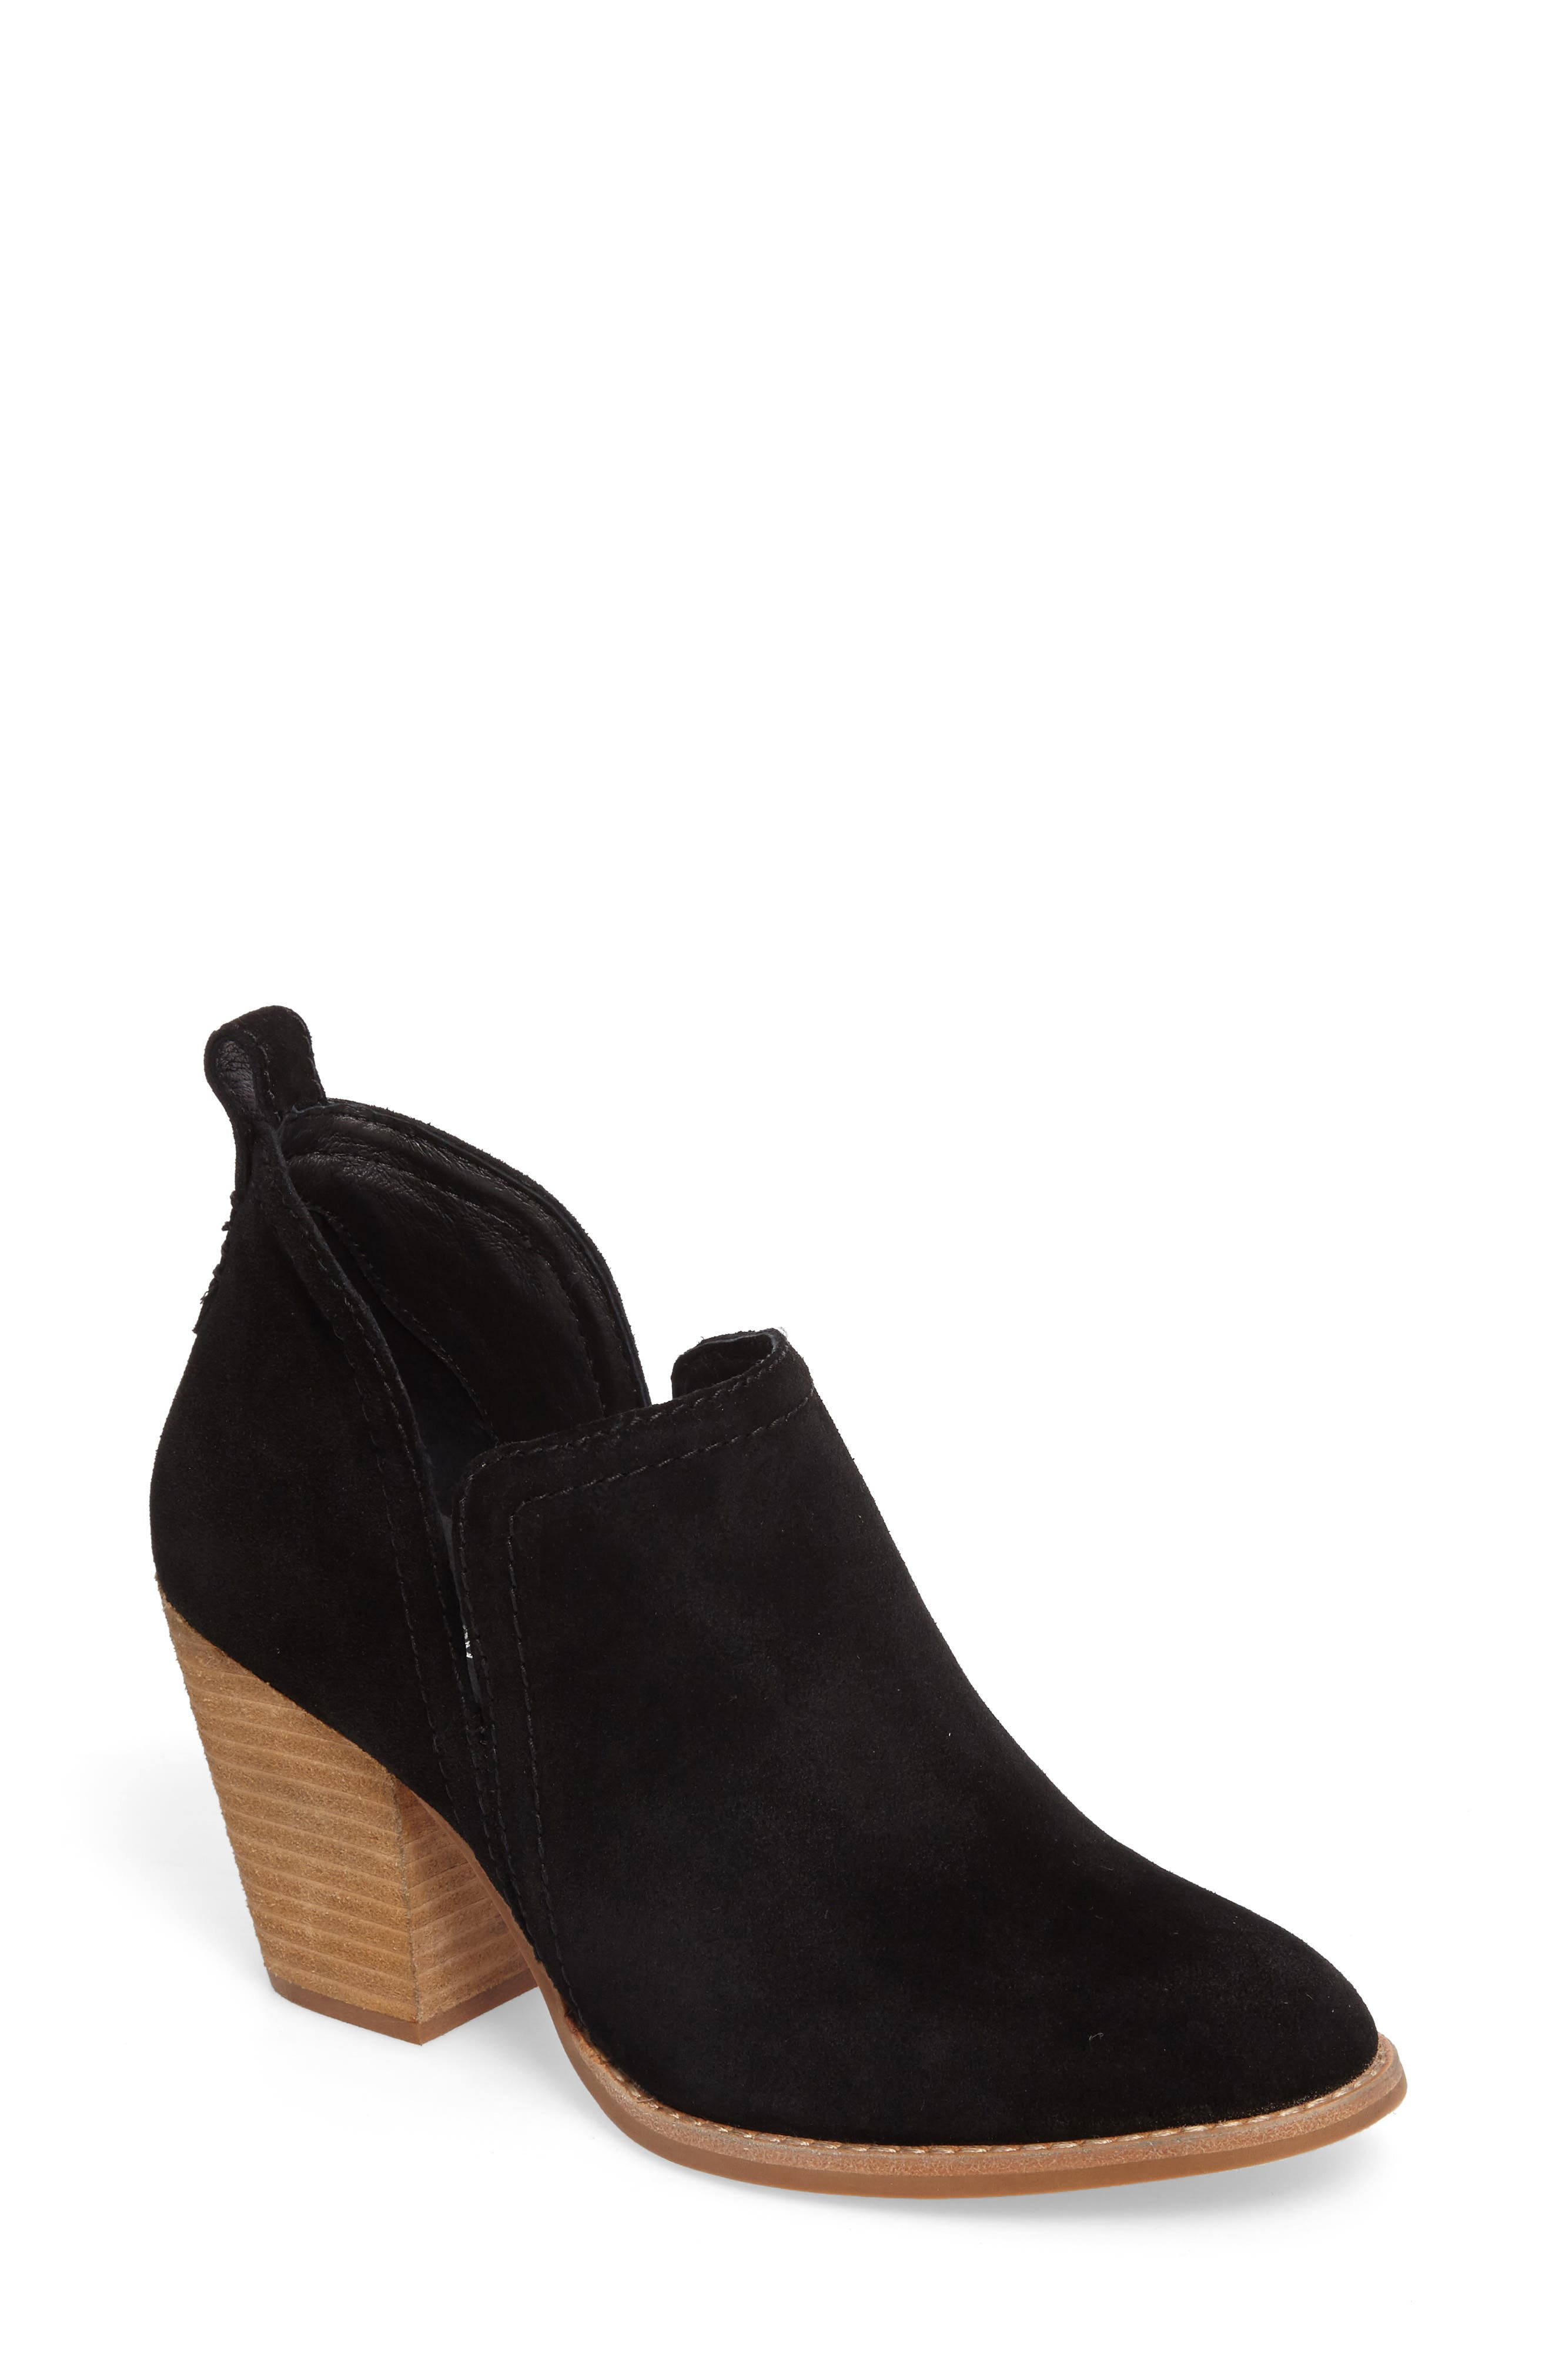 Rosalee Bootie,                             Main thumbnail 1, color,                             BLACK OILED SUEDE